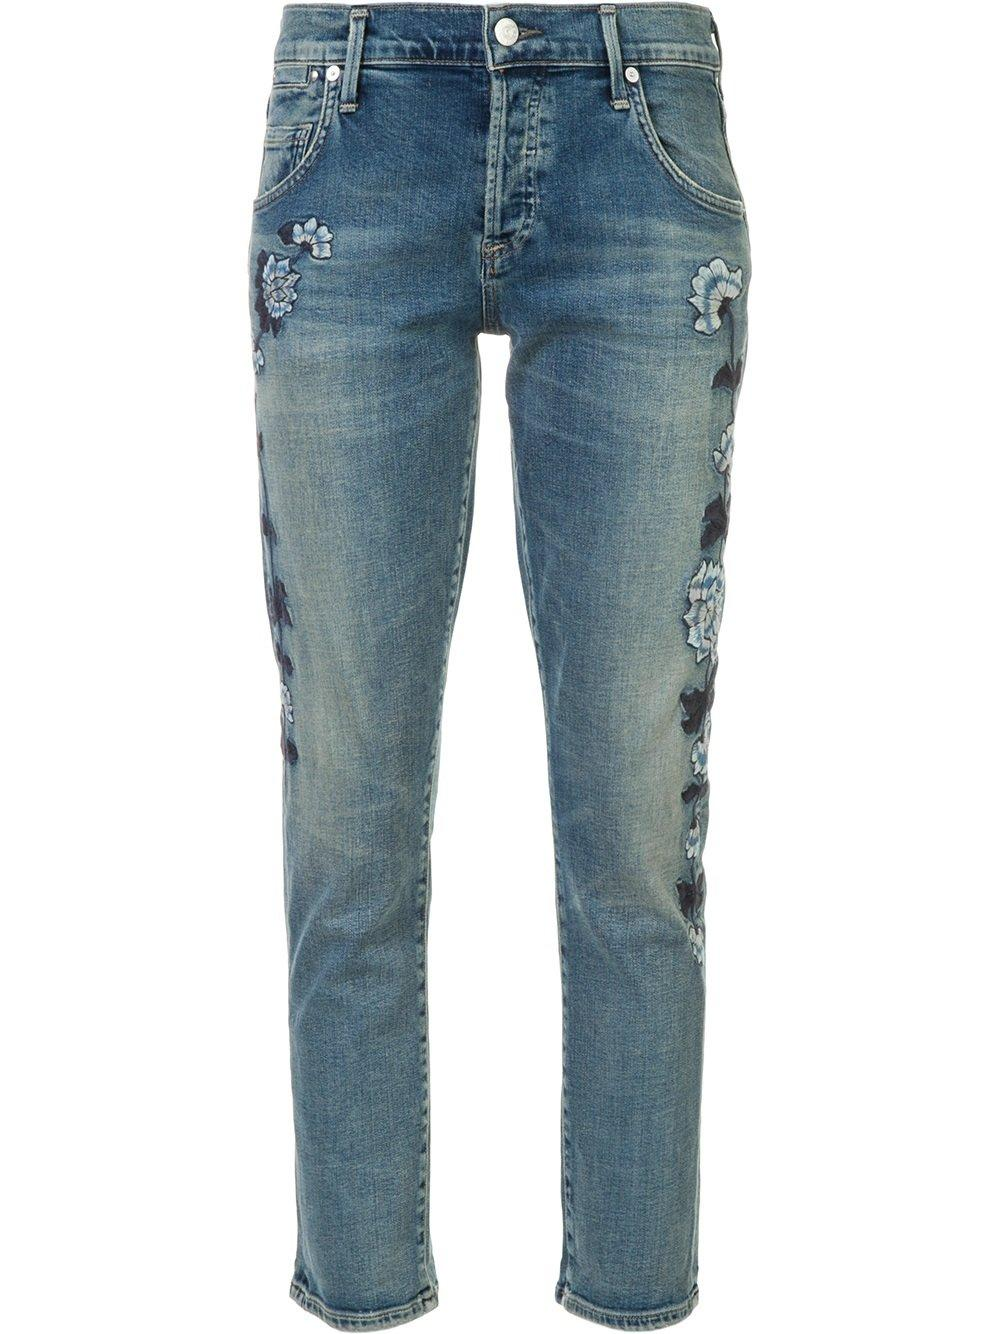 lyst citizens of humanity embroidered cropped jeans in blue. Black Bedroom Furniture Sets. Home Design Ideas